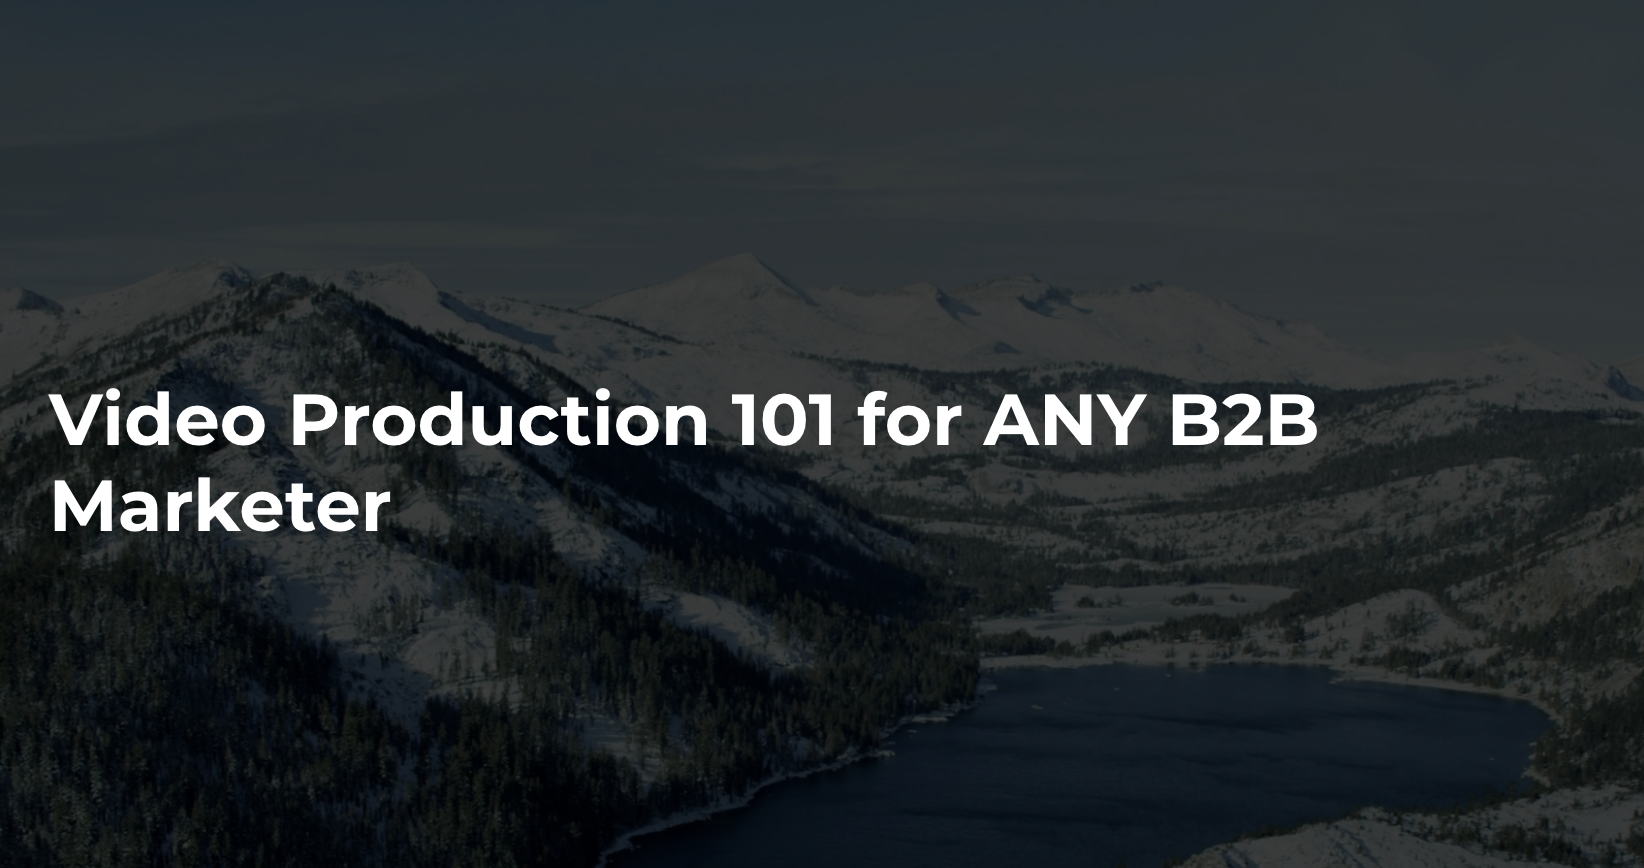 Just Do It: Video Production 101 for ANY B2B Marketer